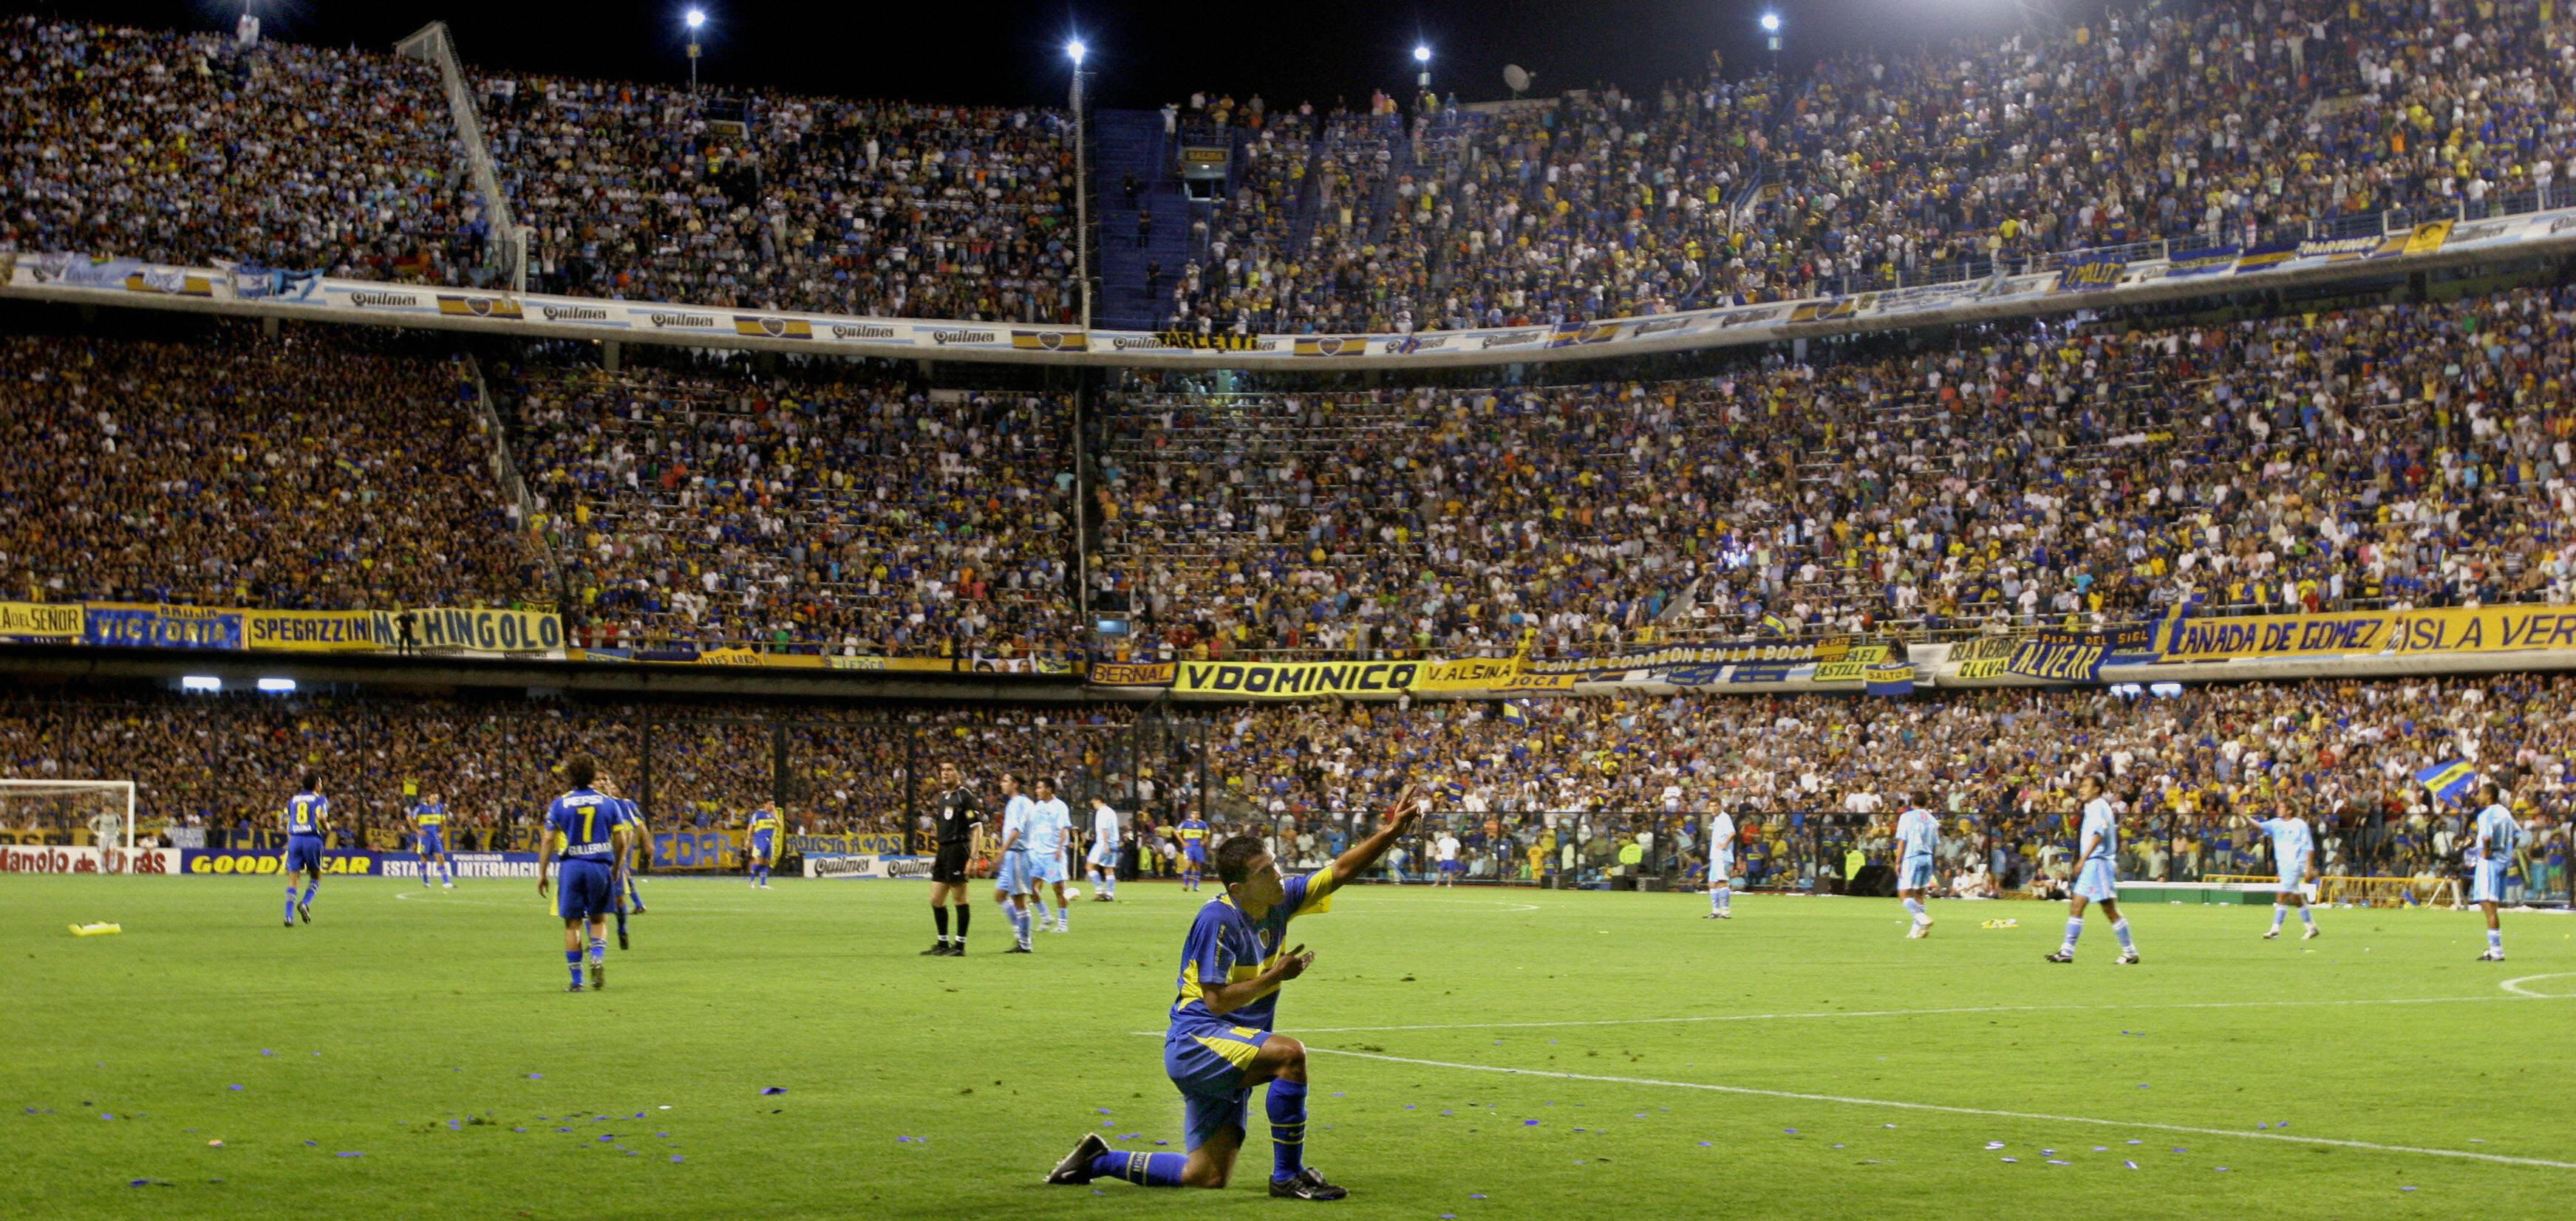 Argentine soccer club Boca Juniors brings optical fiber and high-speed wi-fi to its stadium